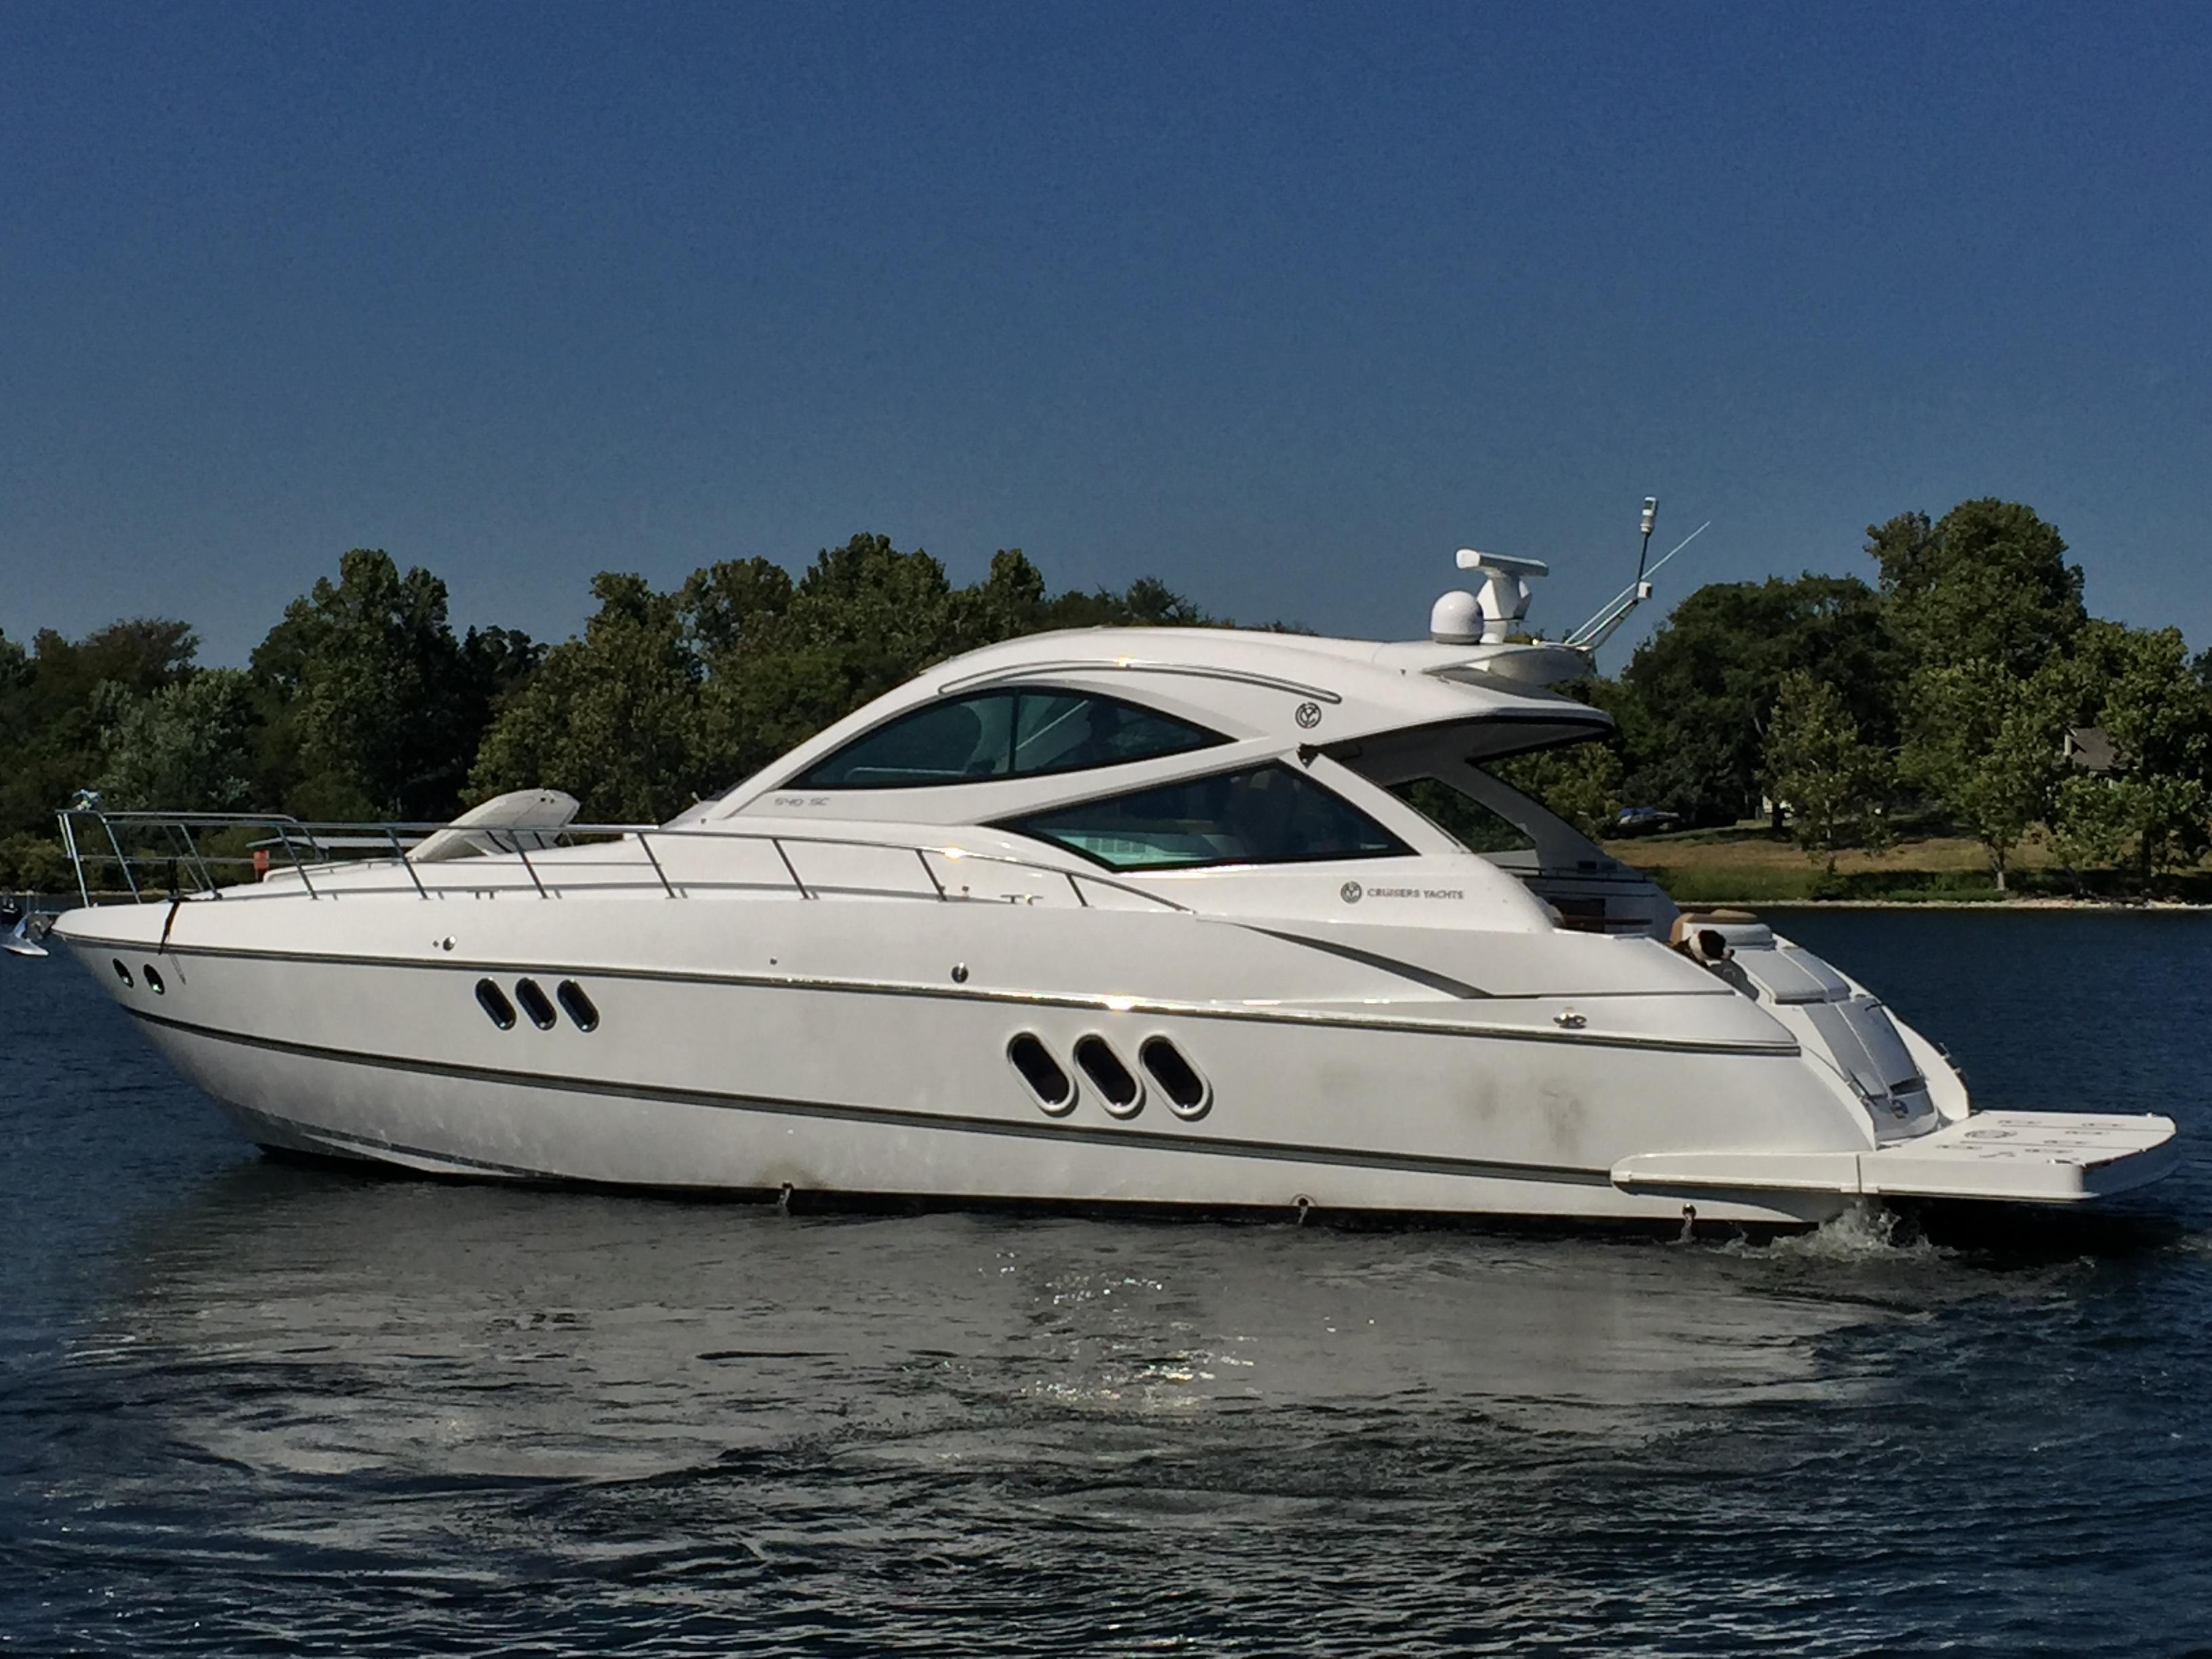 54 ft Cruisers Yachts 540 Sports Coupe